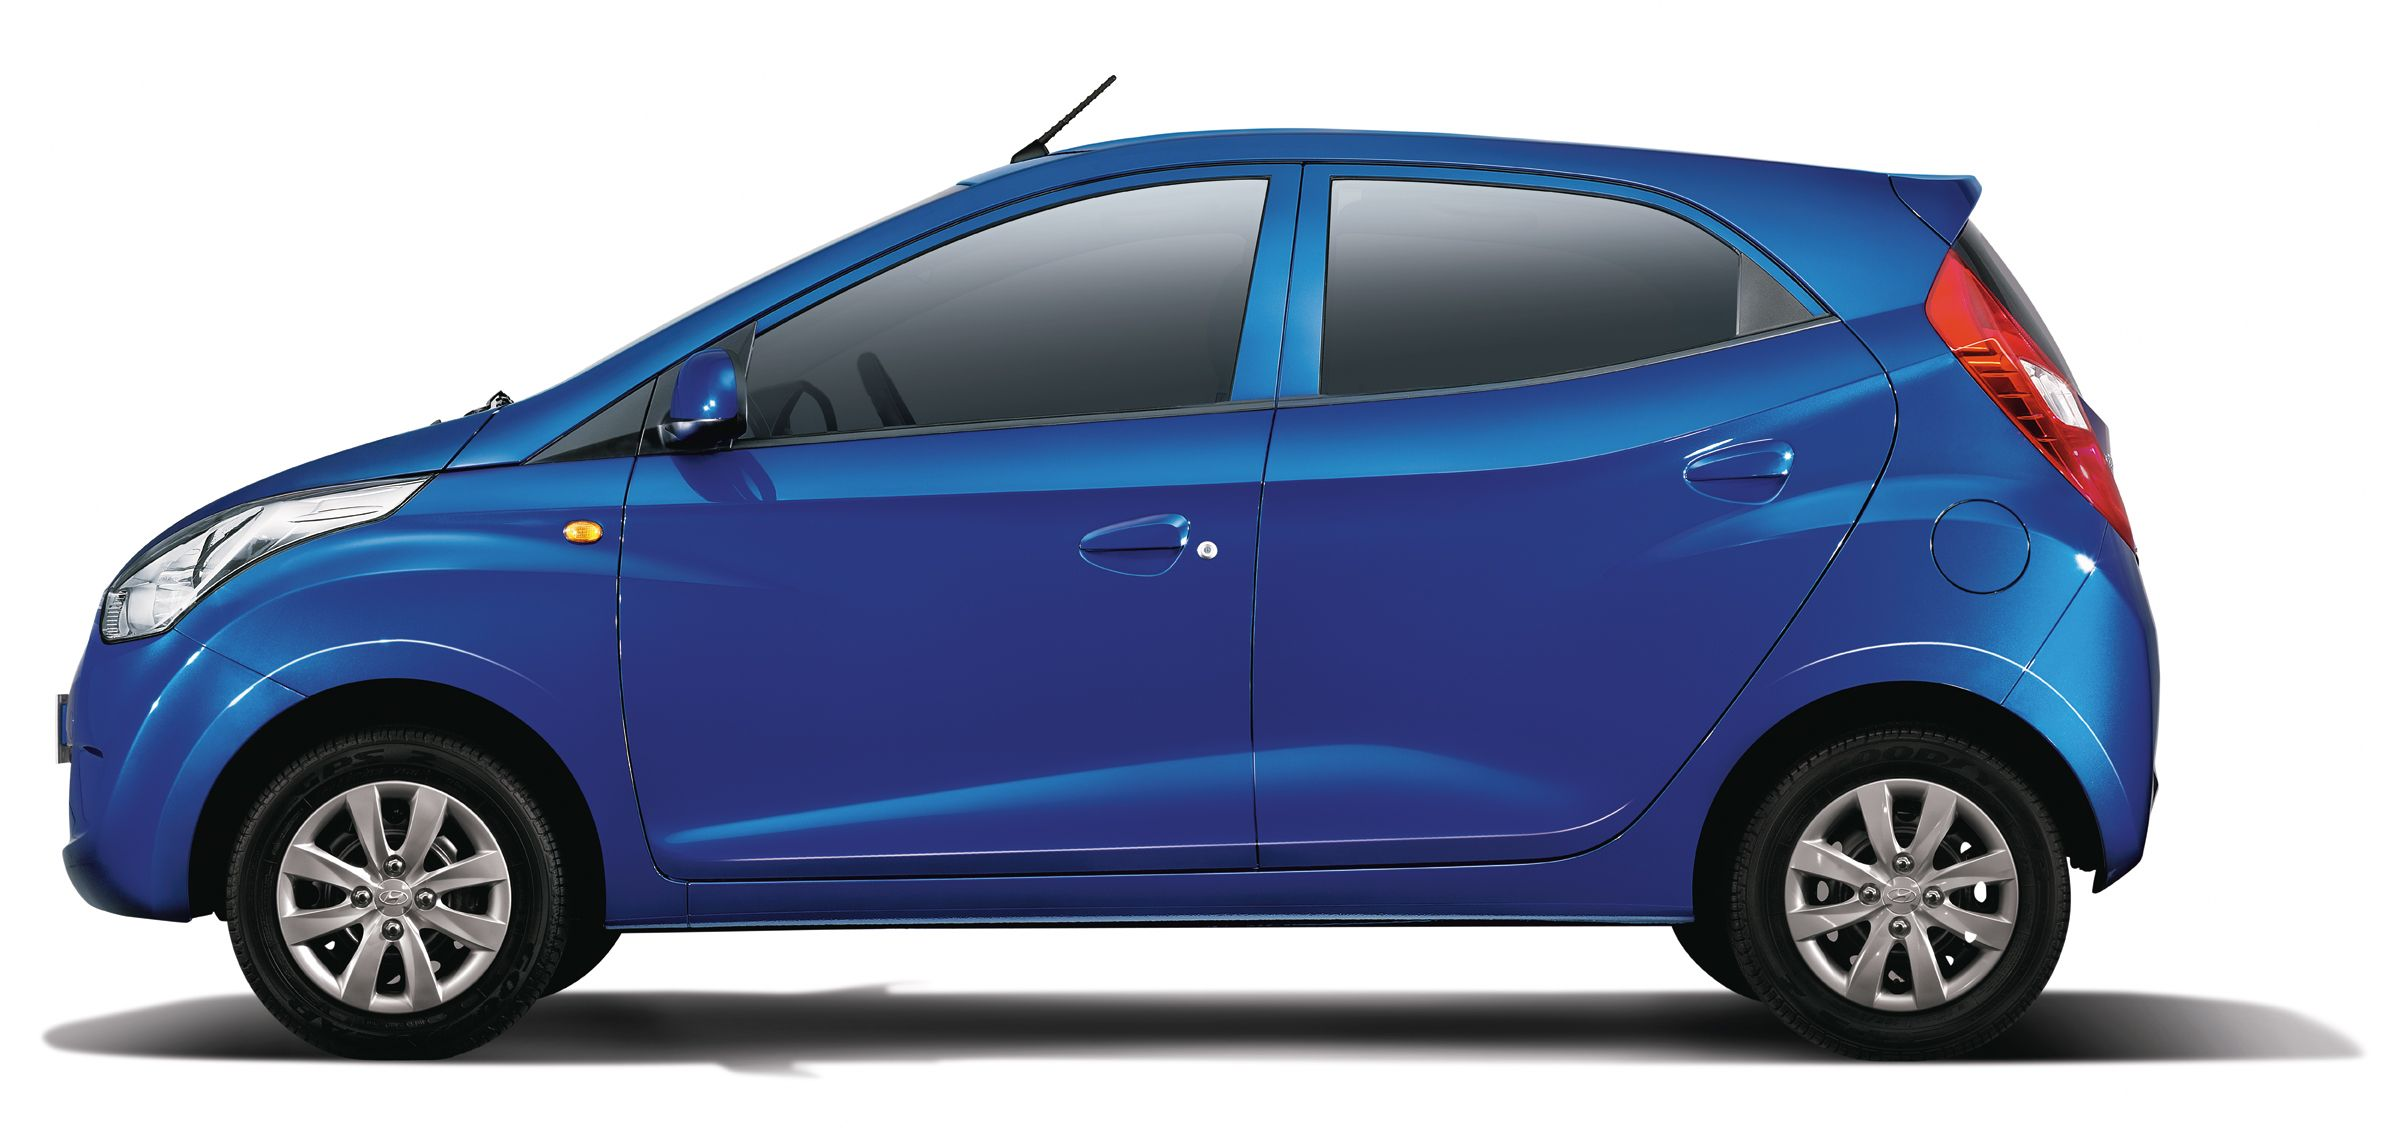 hight resolution of hyundai eon side reverse view